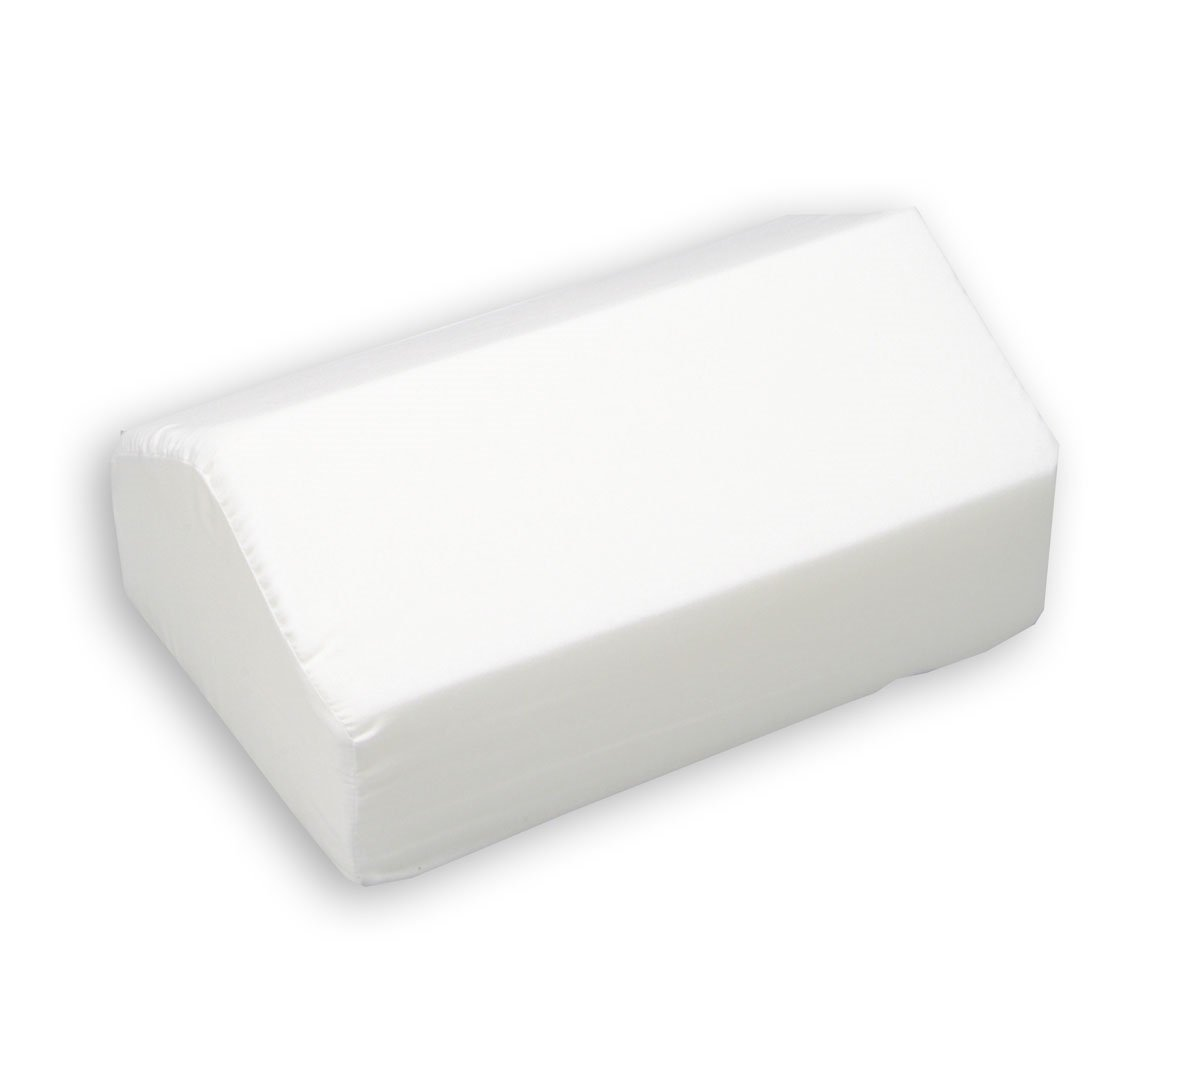 Leg Lifter Cushion - Removable Washable Cover - White - 7 Inch Lift - Small - Gentle Lift, Reduce Pressure, Improve Leg Ciculation - By Hermell Products